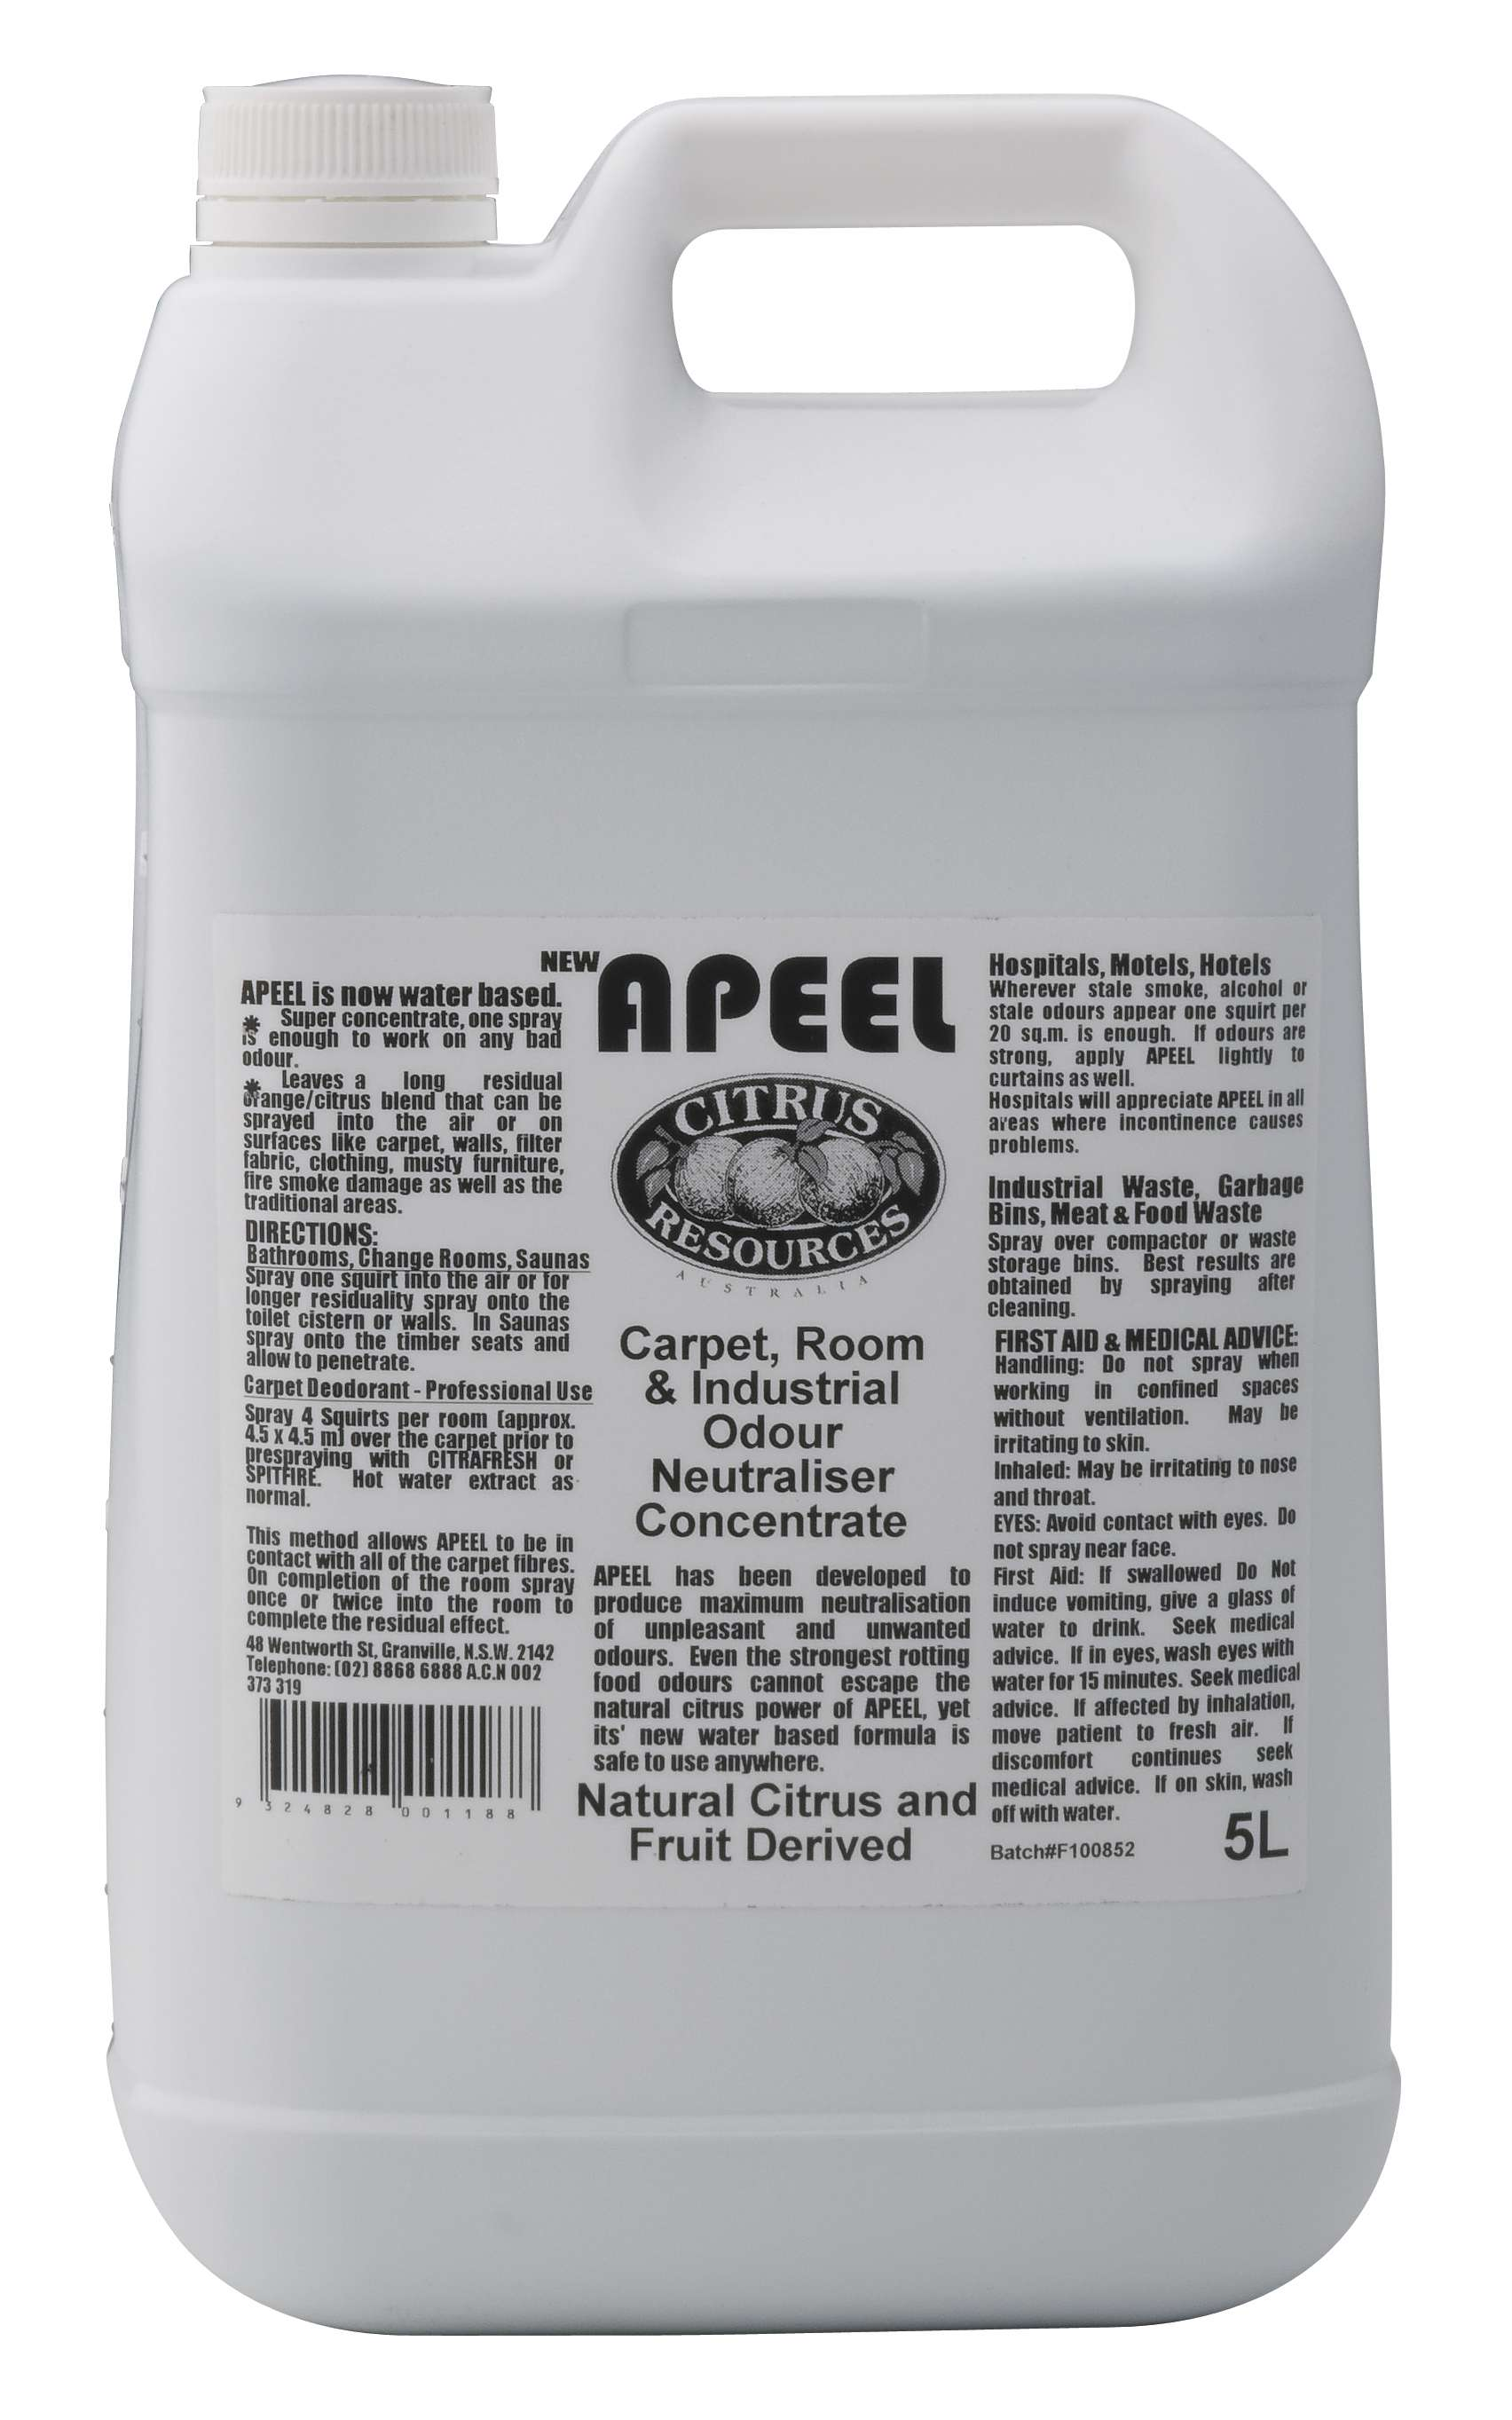 Apeel Powervac Cleaning Equipment Amp Service